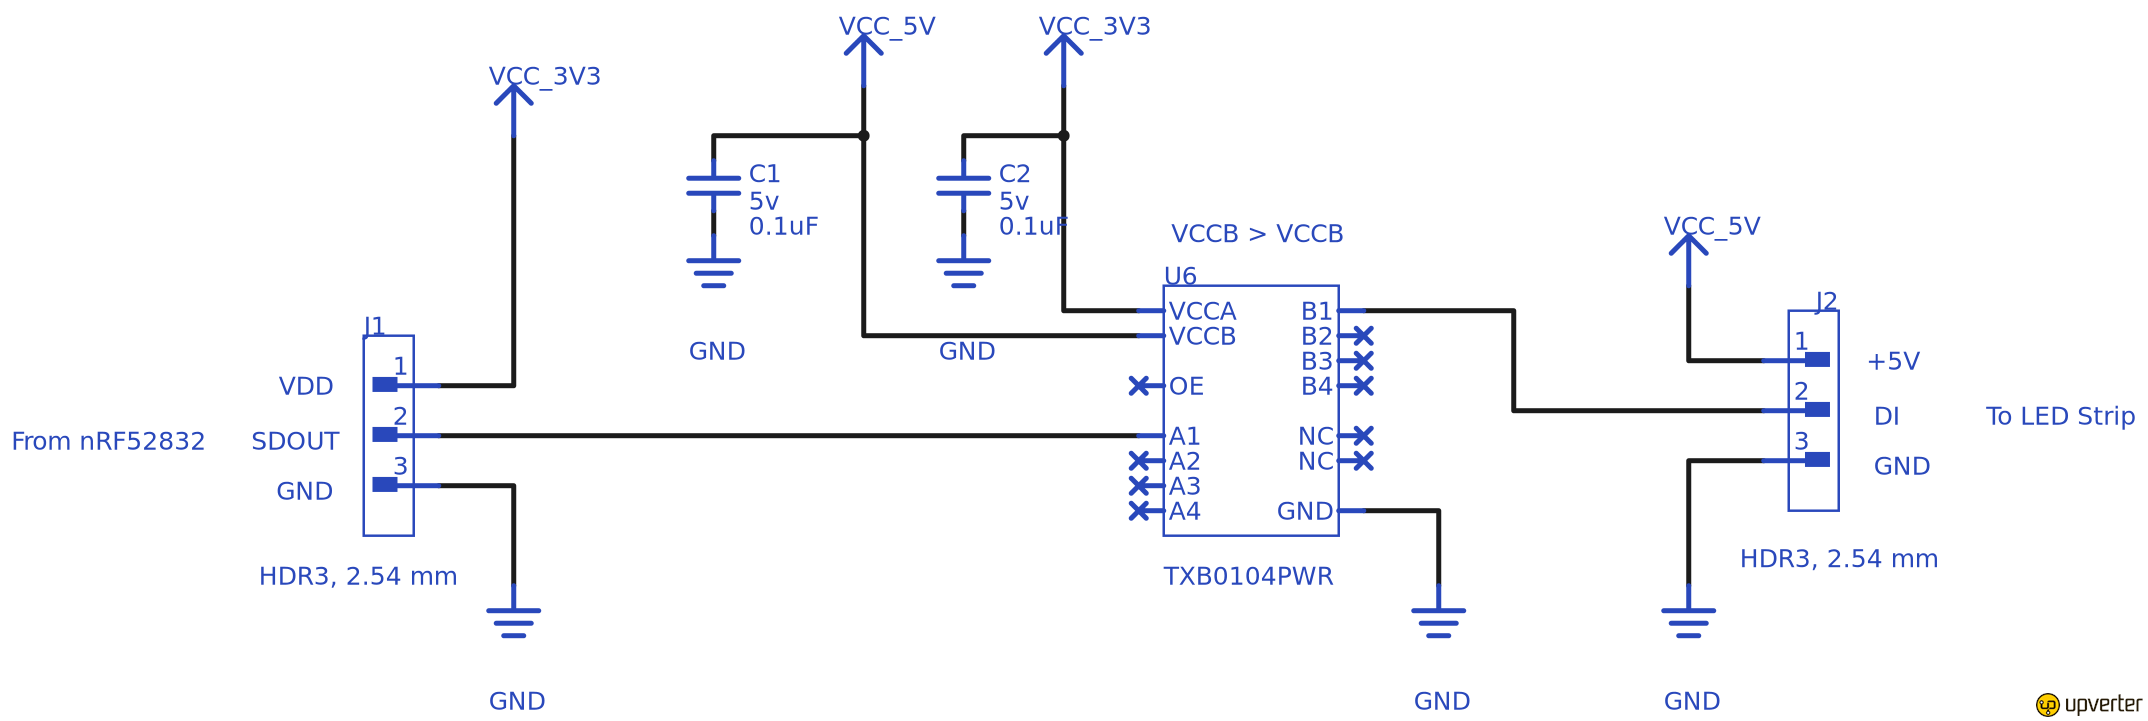 Bluetooth Controlled Led Light Strip Part 1 Of 2 Power Schematic N54tfampaspjy2nd73hd